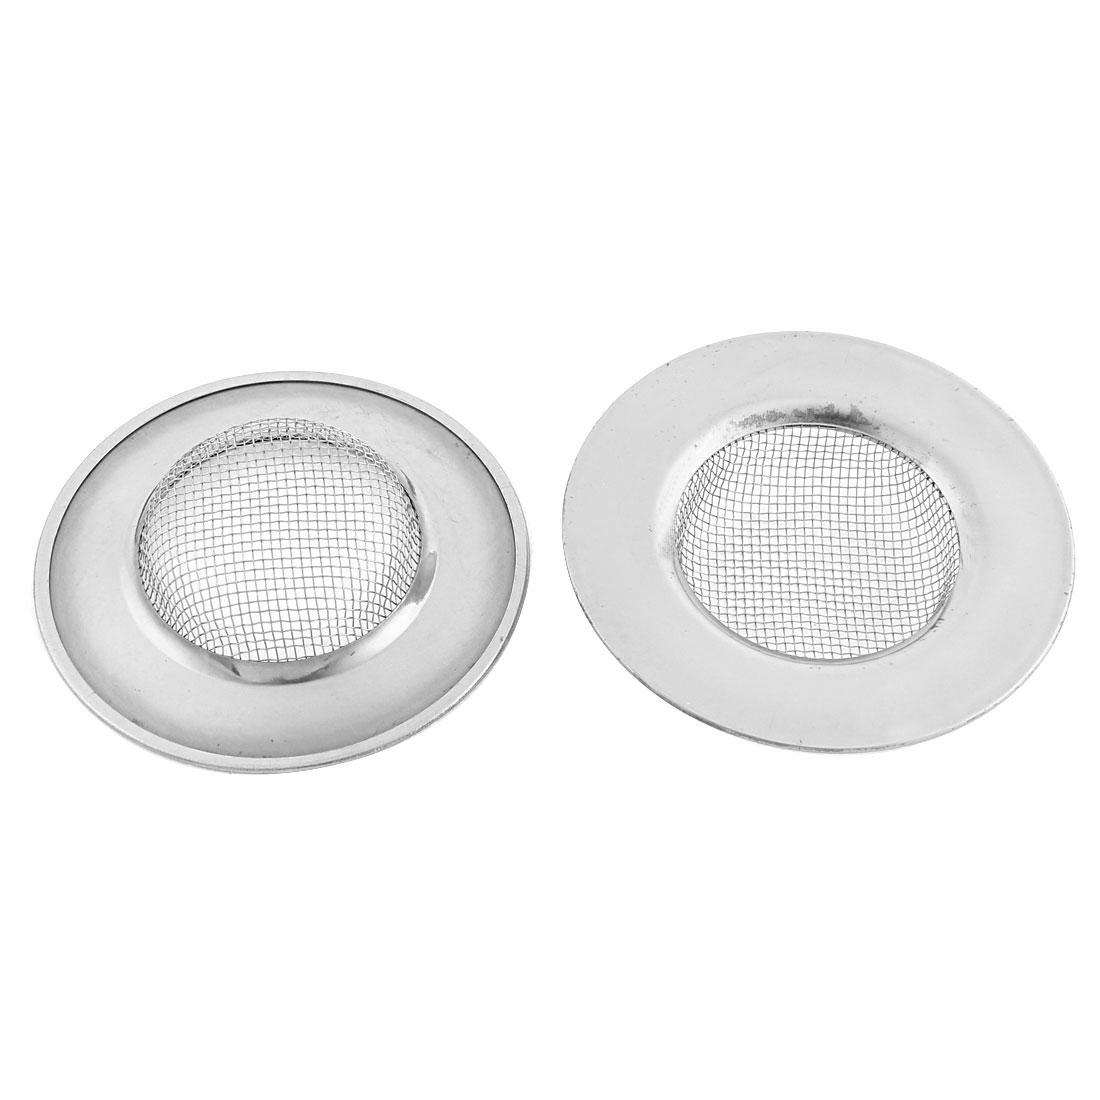 Kitchen Stainless Steel Sink Basin Waste Strainer Filter Drainer Stopper 2pcs